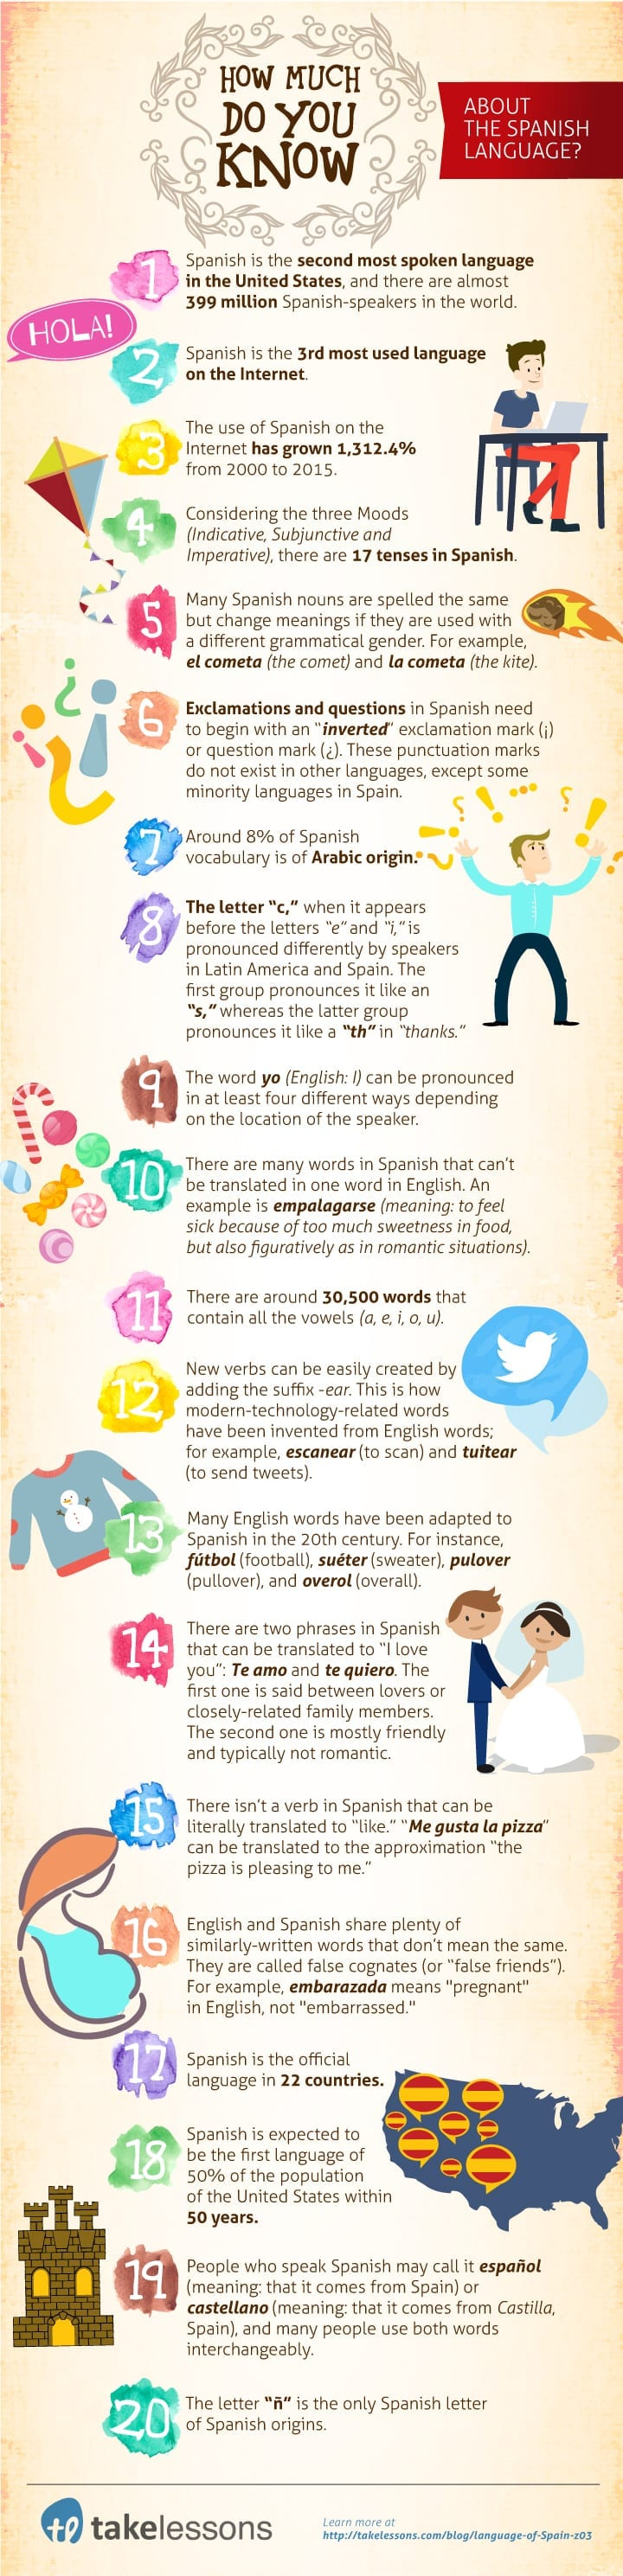 Interesting Facts About the Language of Spain - infographic